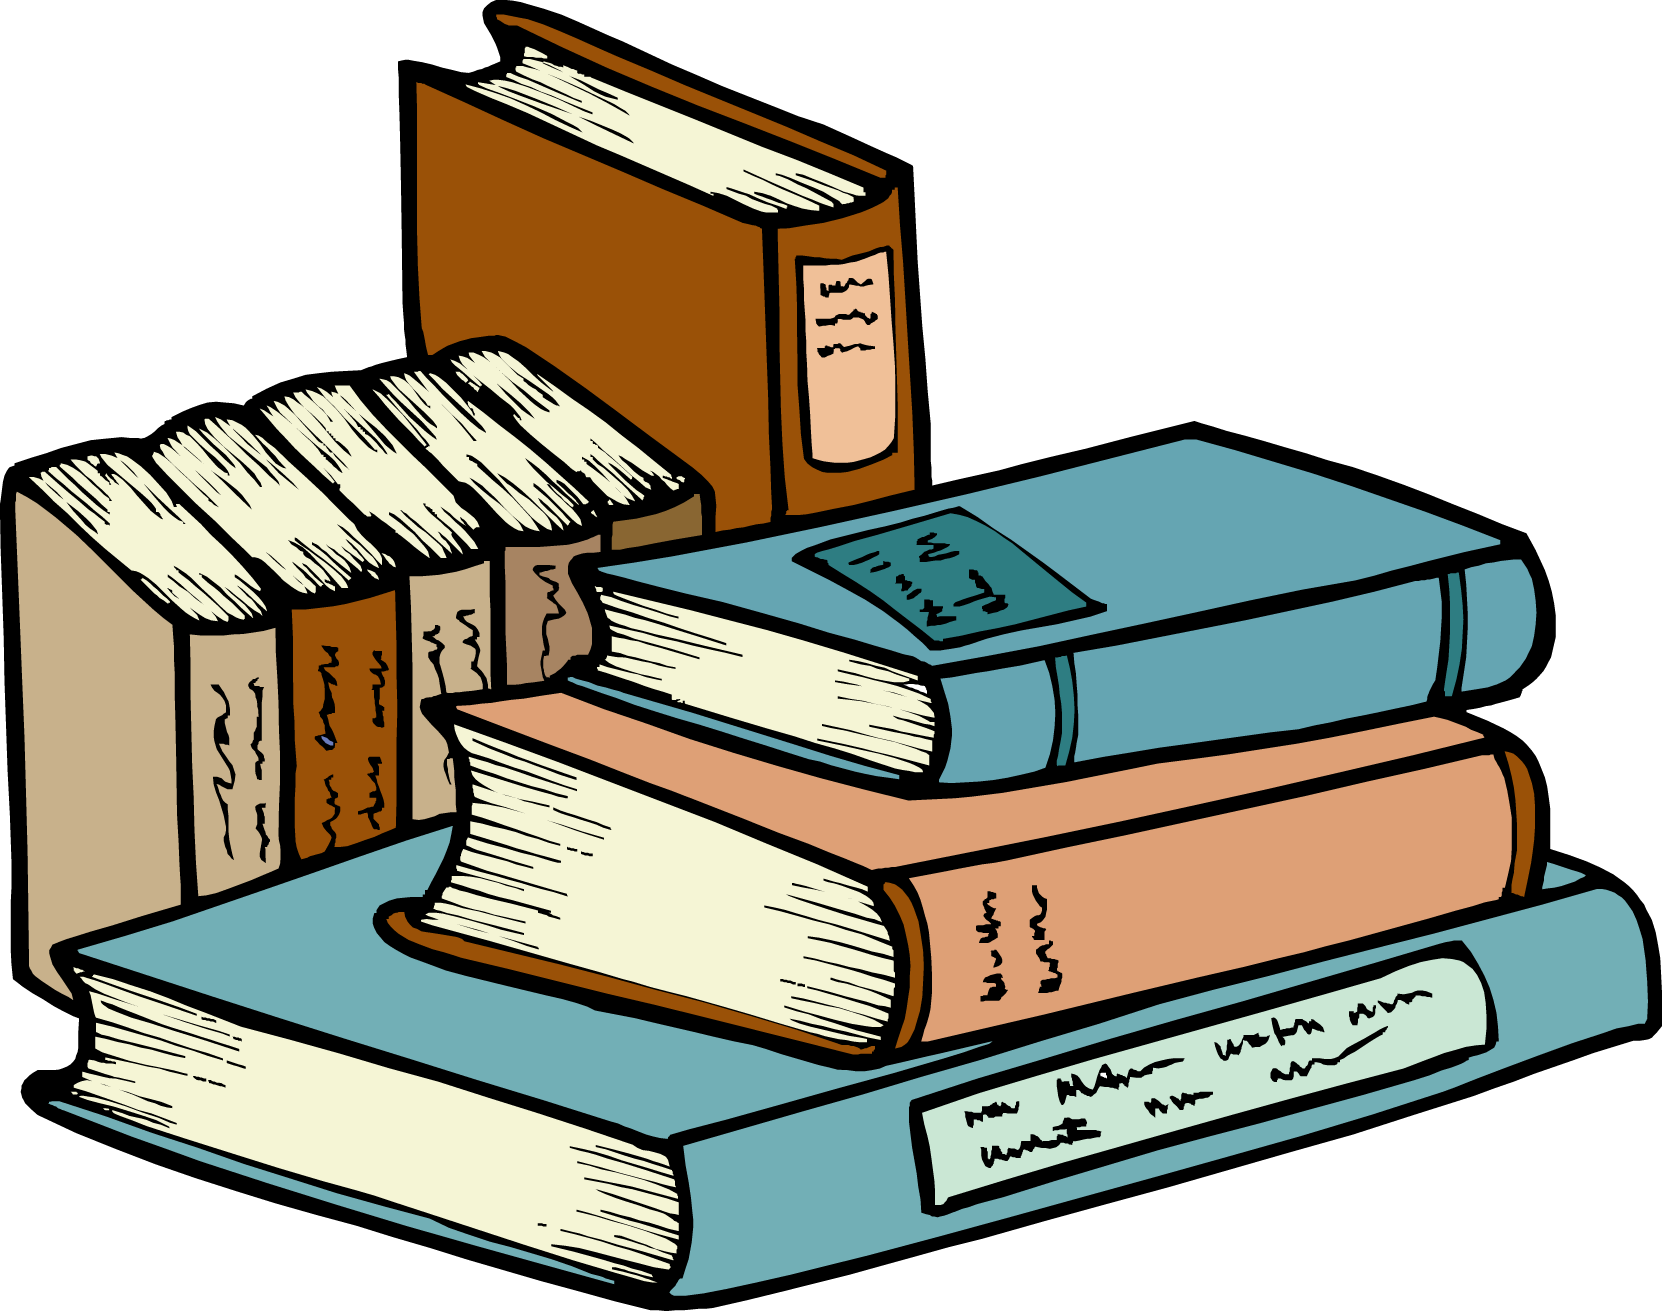 Book pile clipart png royalty free stock Stack Of Books Clipart | Clipart Panda - Free Clipart Images png royalty free stock